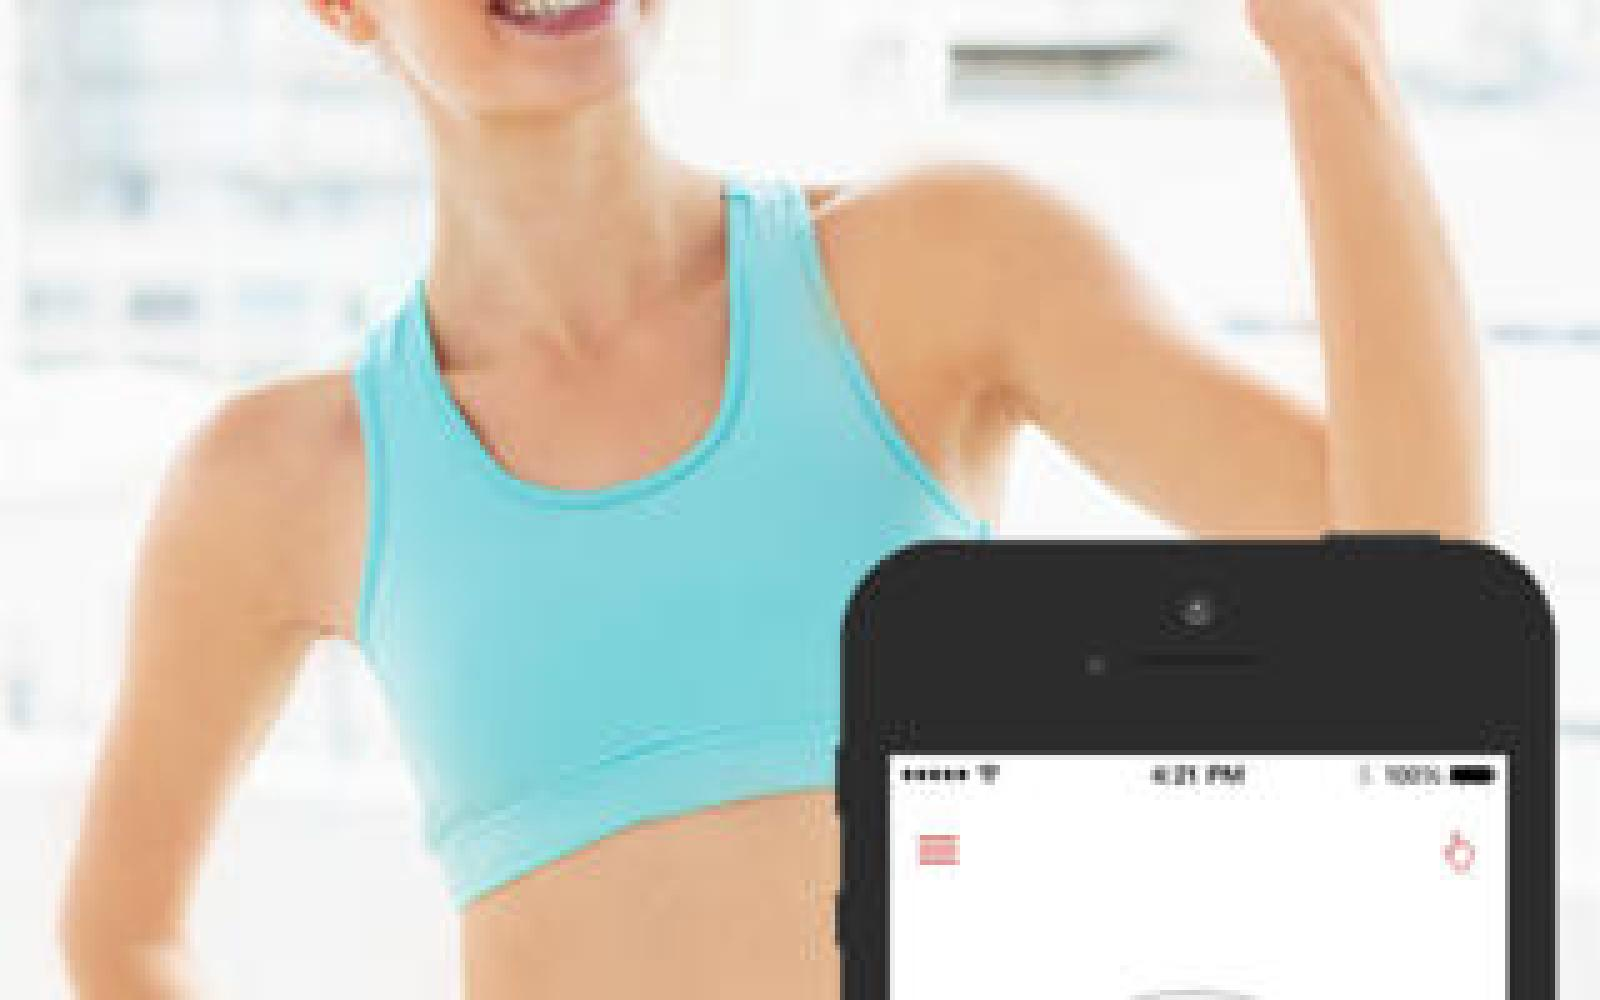 Jealous of S5 heart rate monitor? Your iPhone can already measure your heart rate with these apps